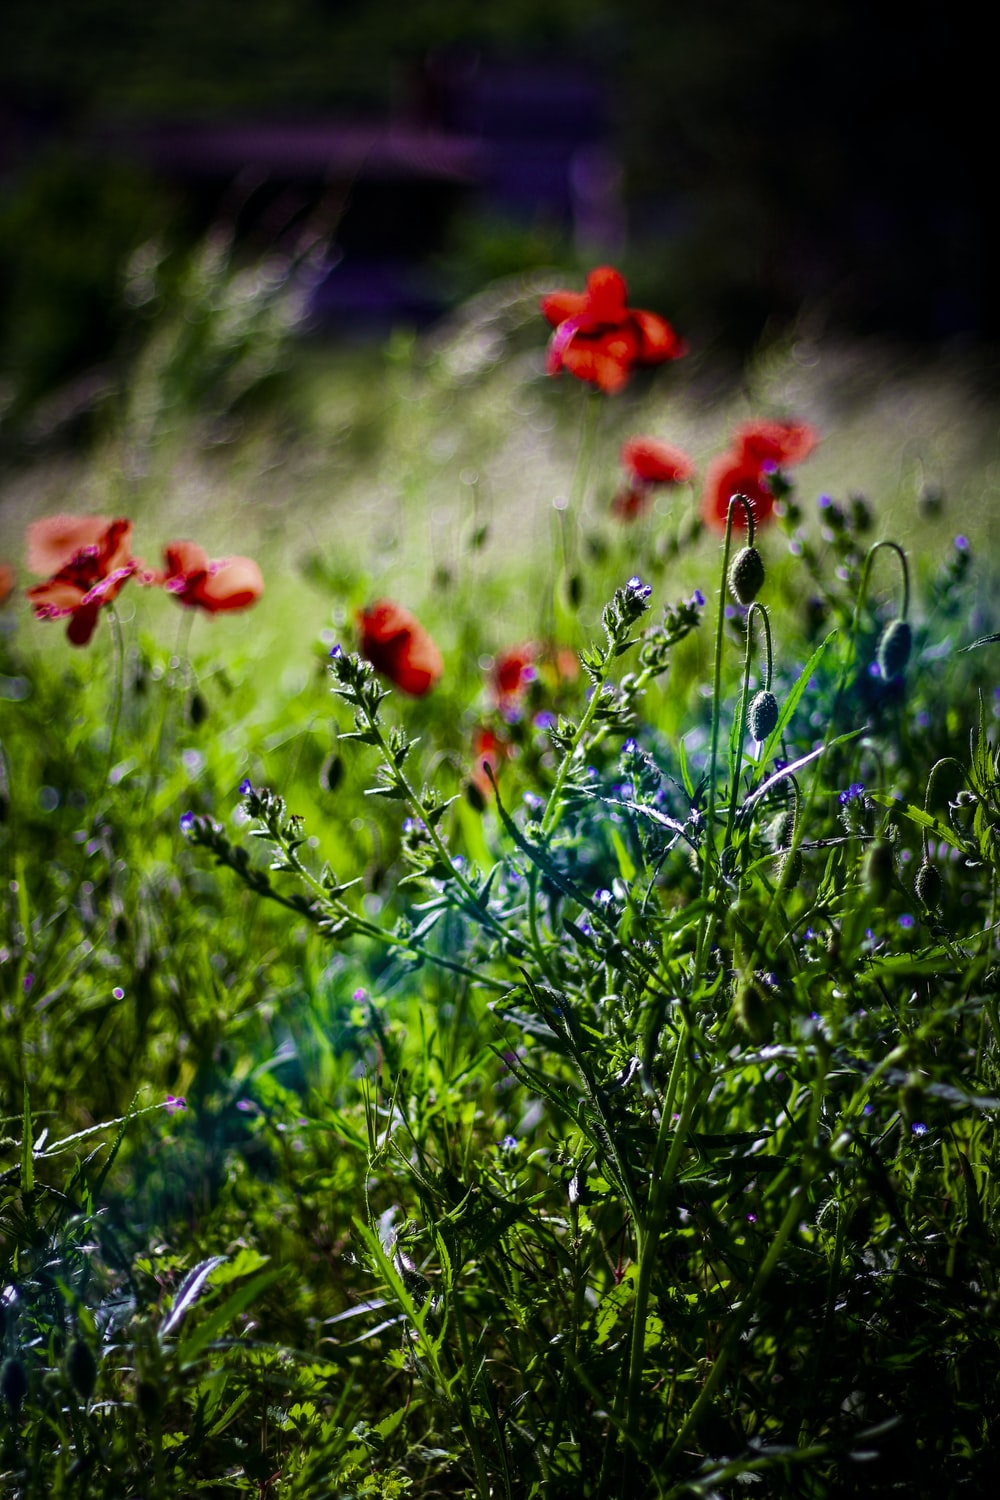 red flowers on green grass field during daytime